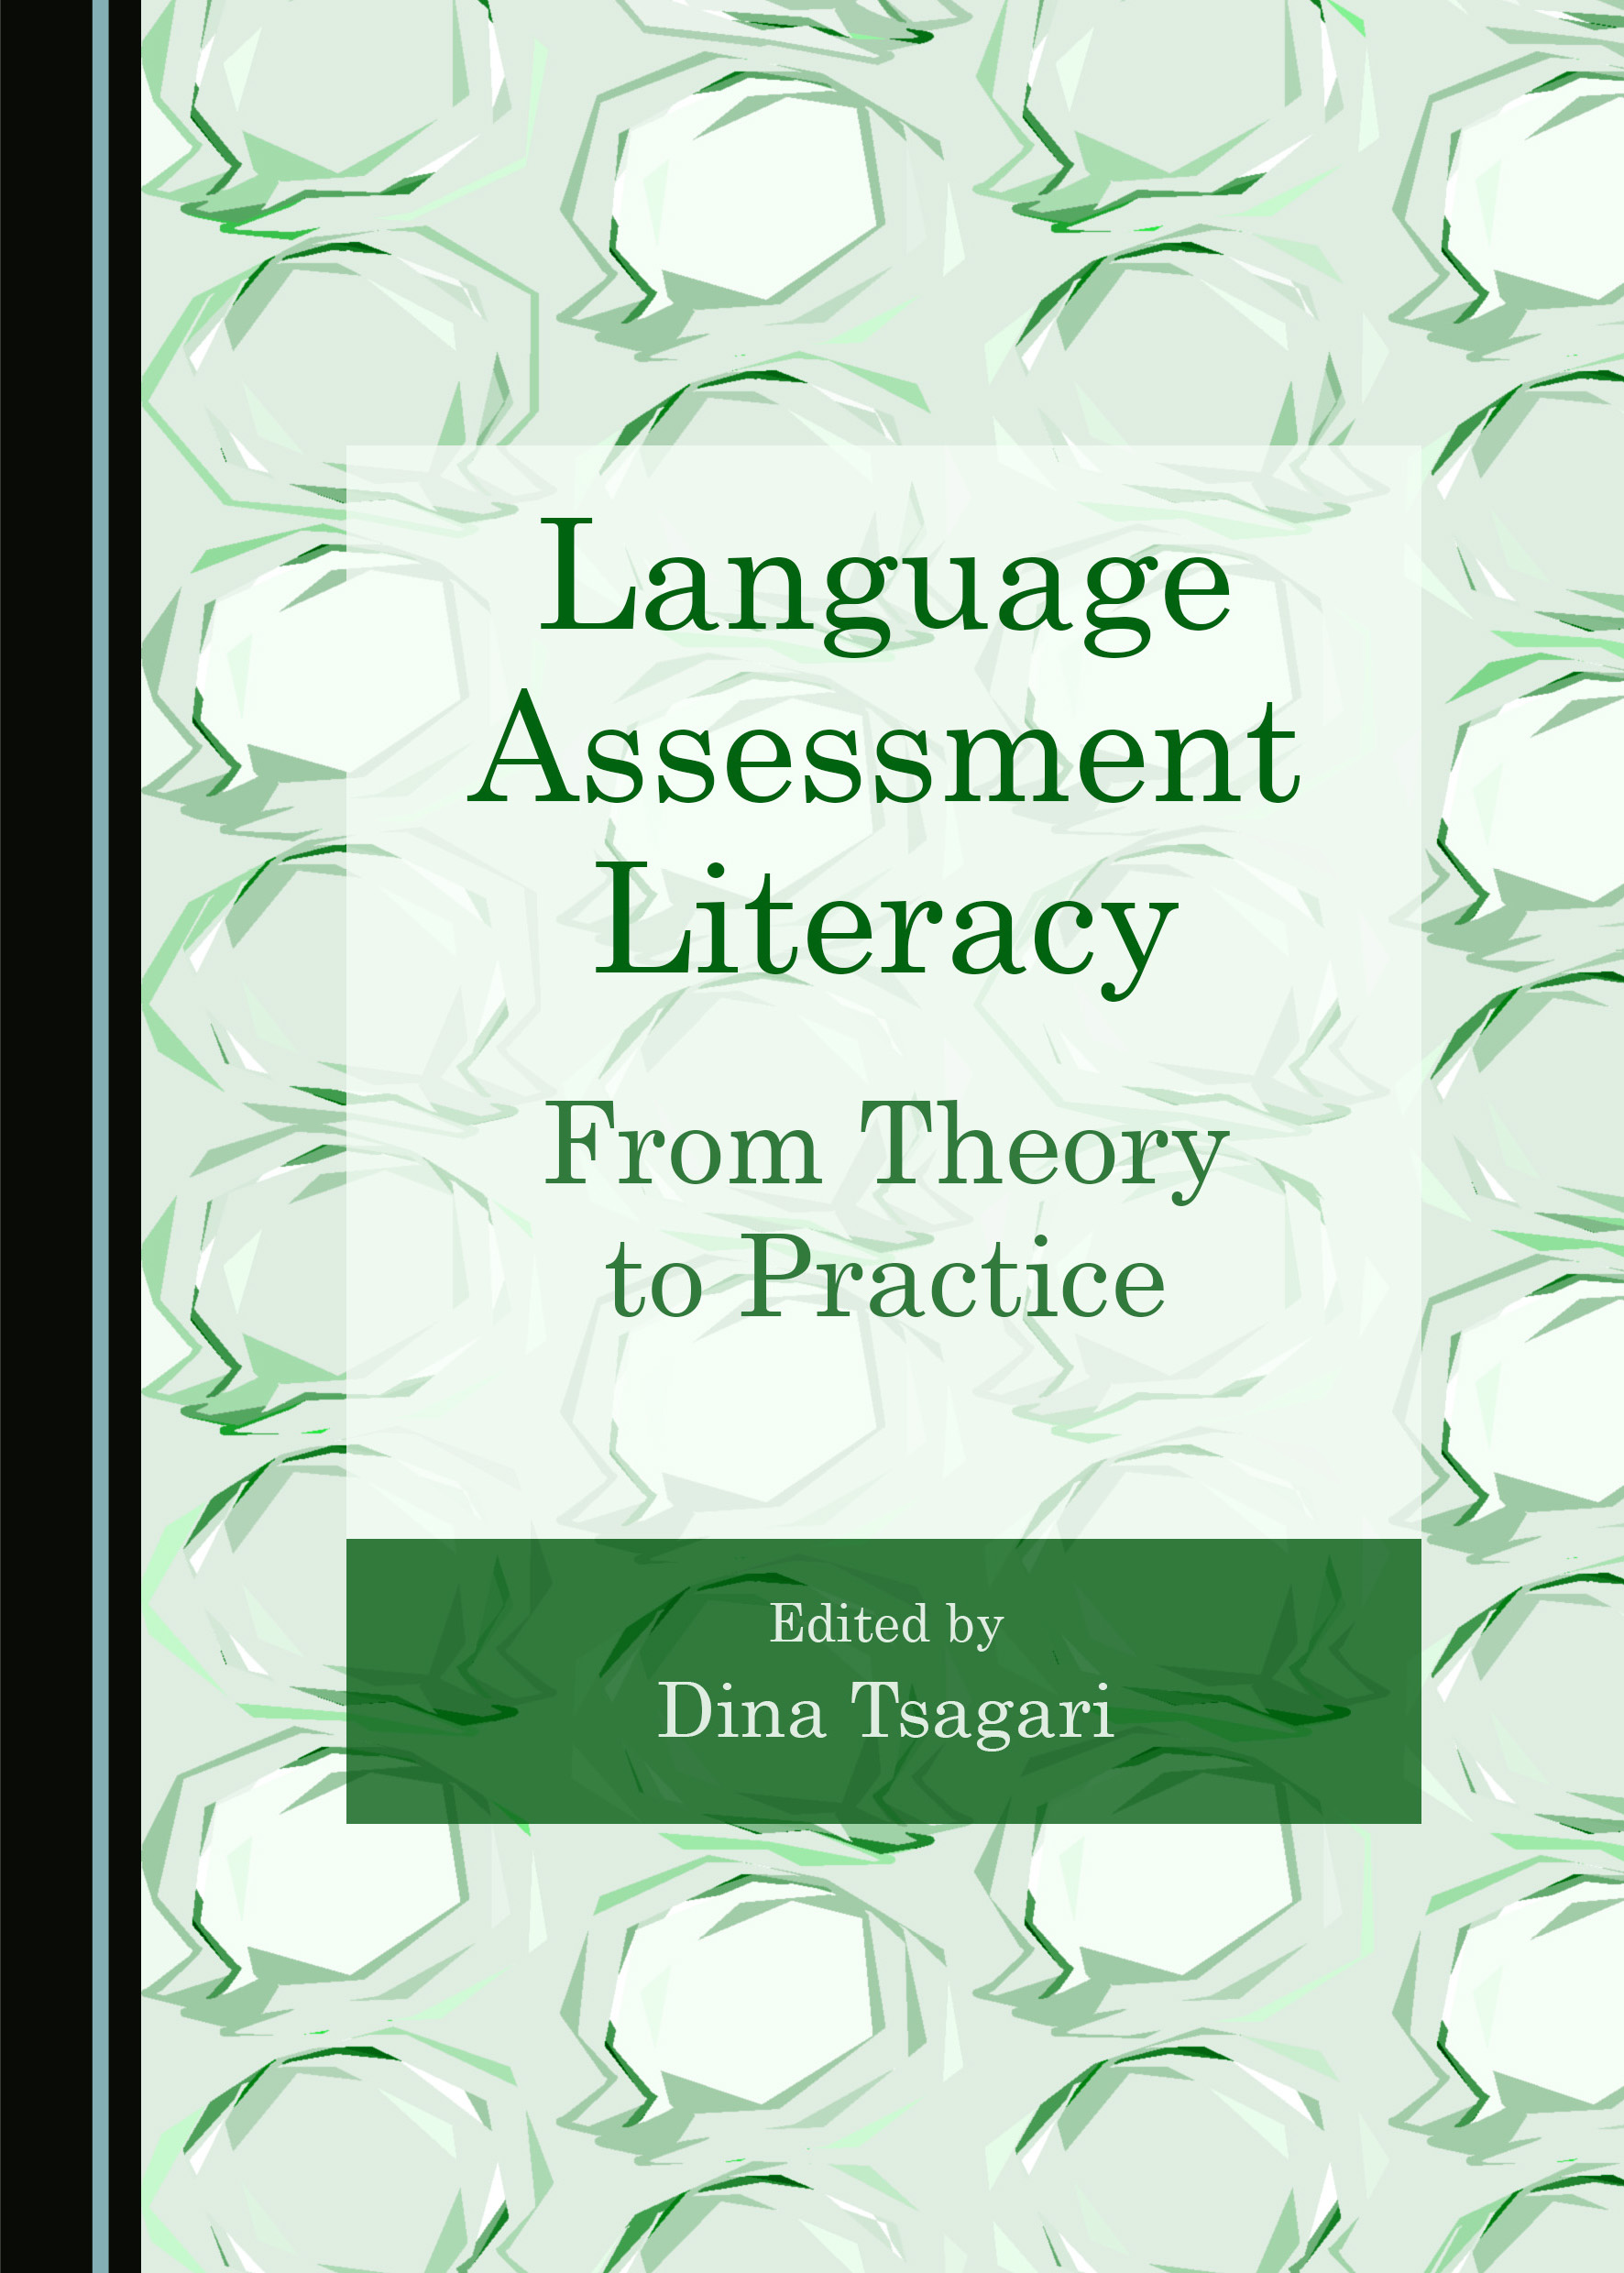 Language Assessment Literacy: From Theory to Practice